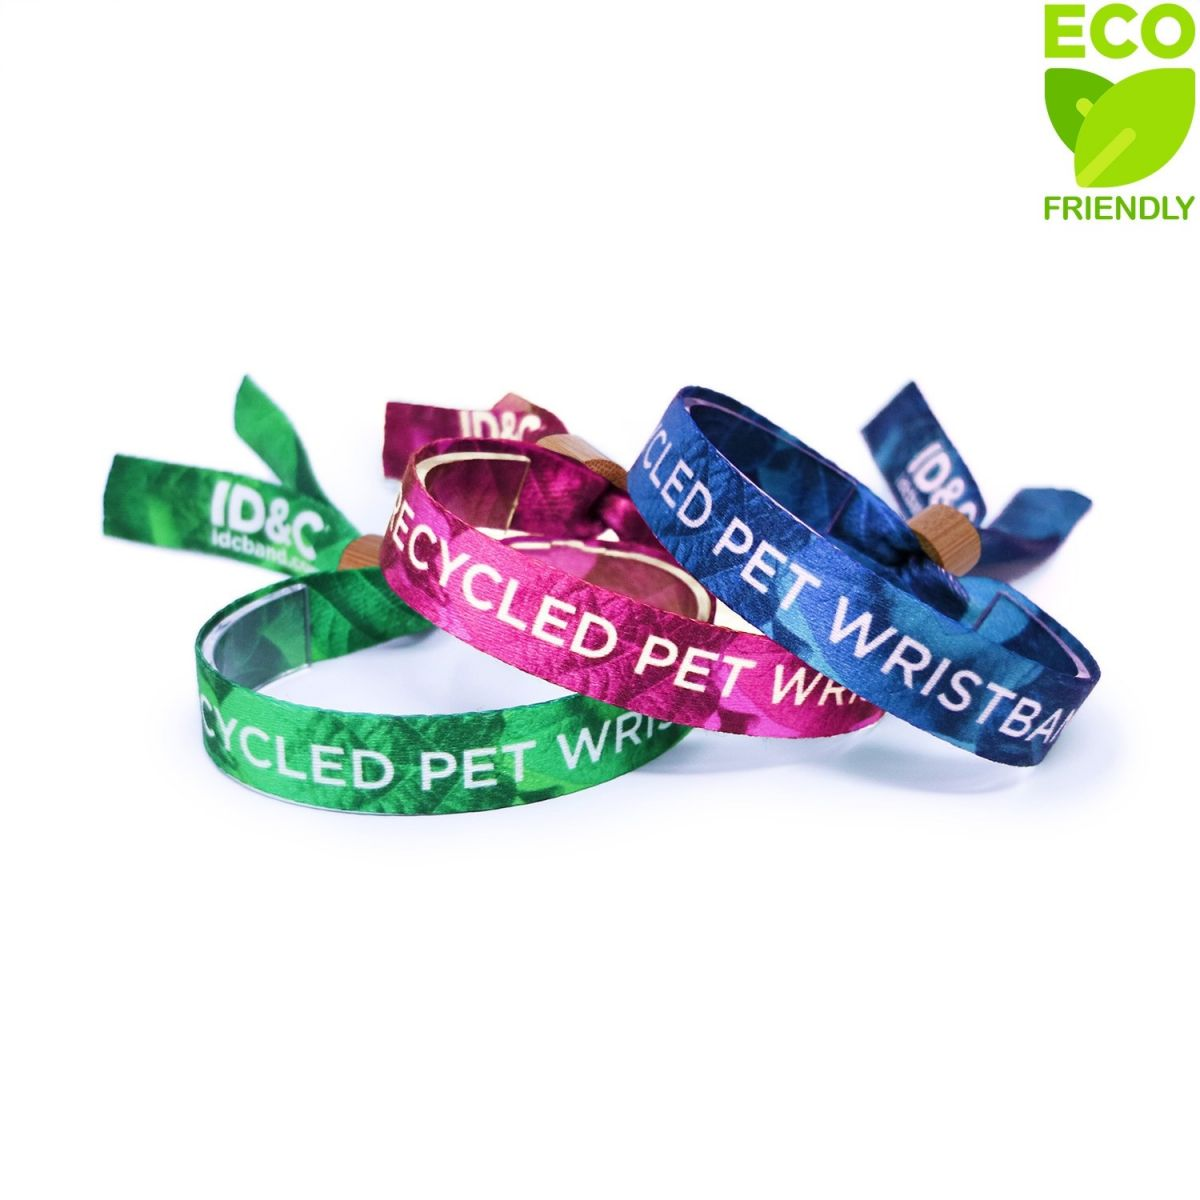 First Aid Fabric Wristband With Reflective Coating /& Matching Pin Badge